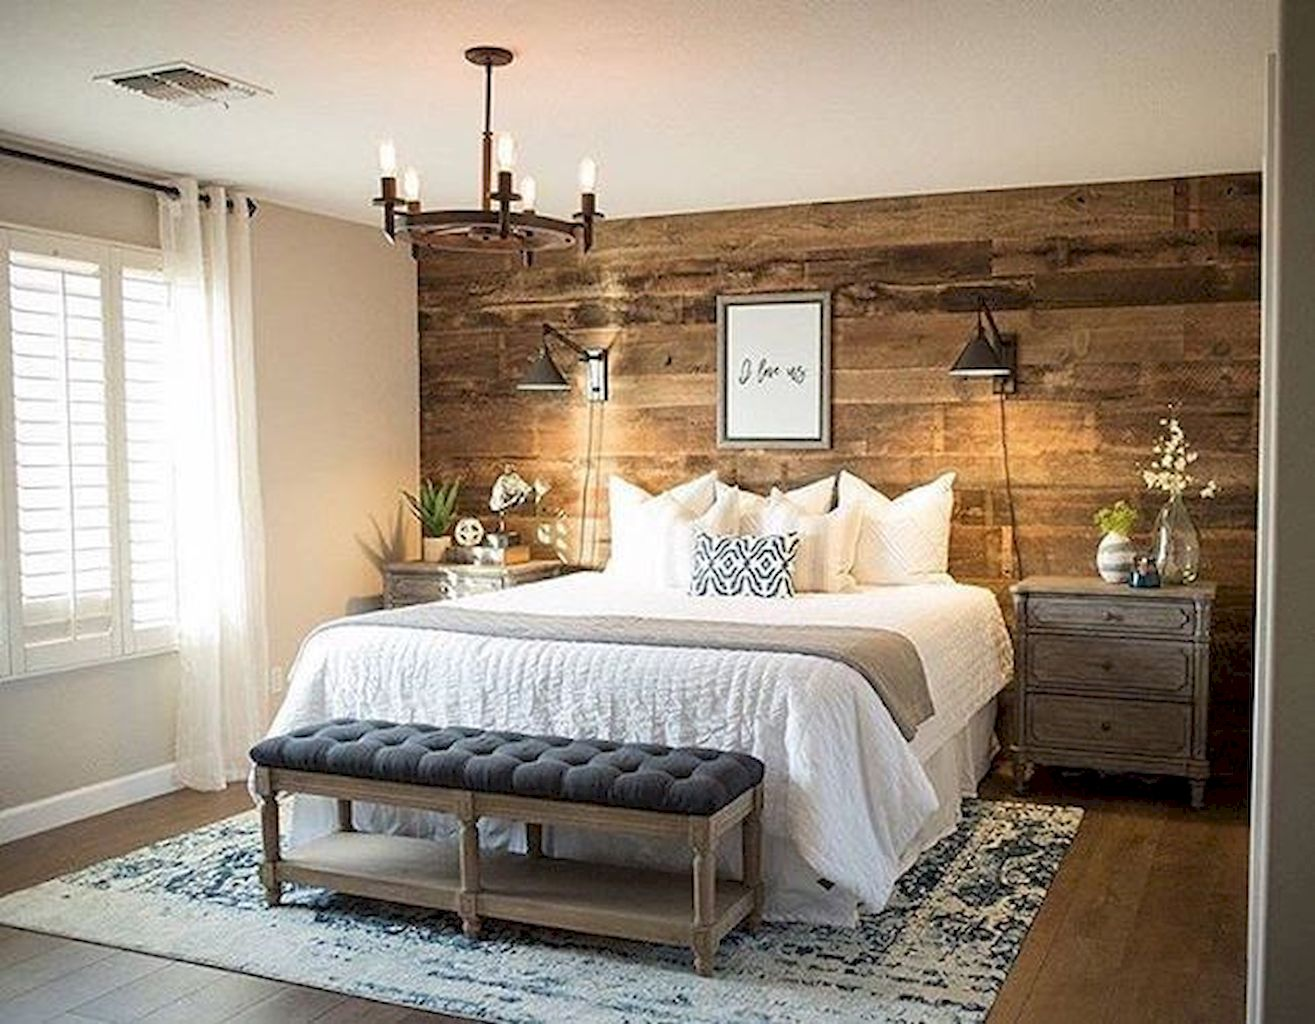 Picture from: Decorating ideas for the master bedroom of the AYDRGWP farmhouse